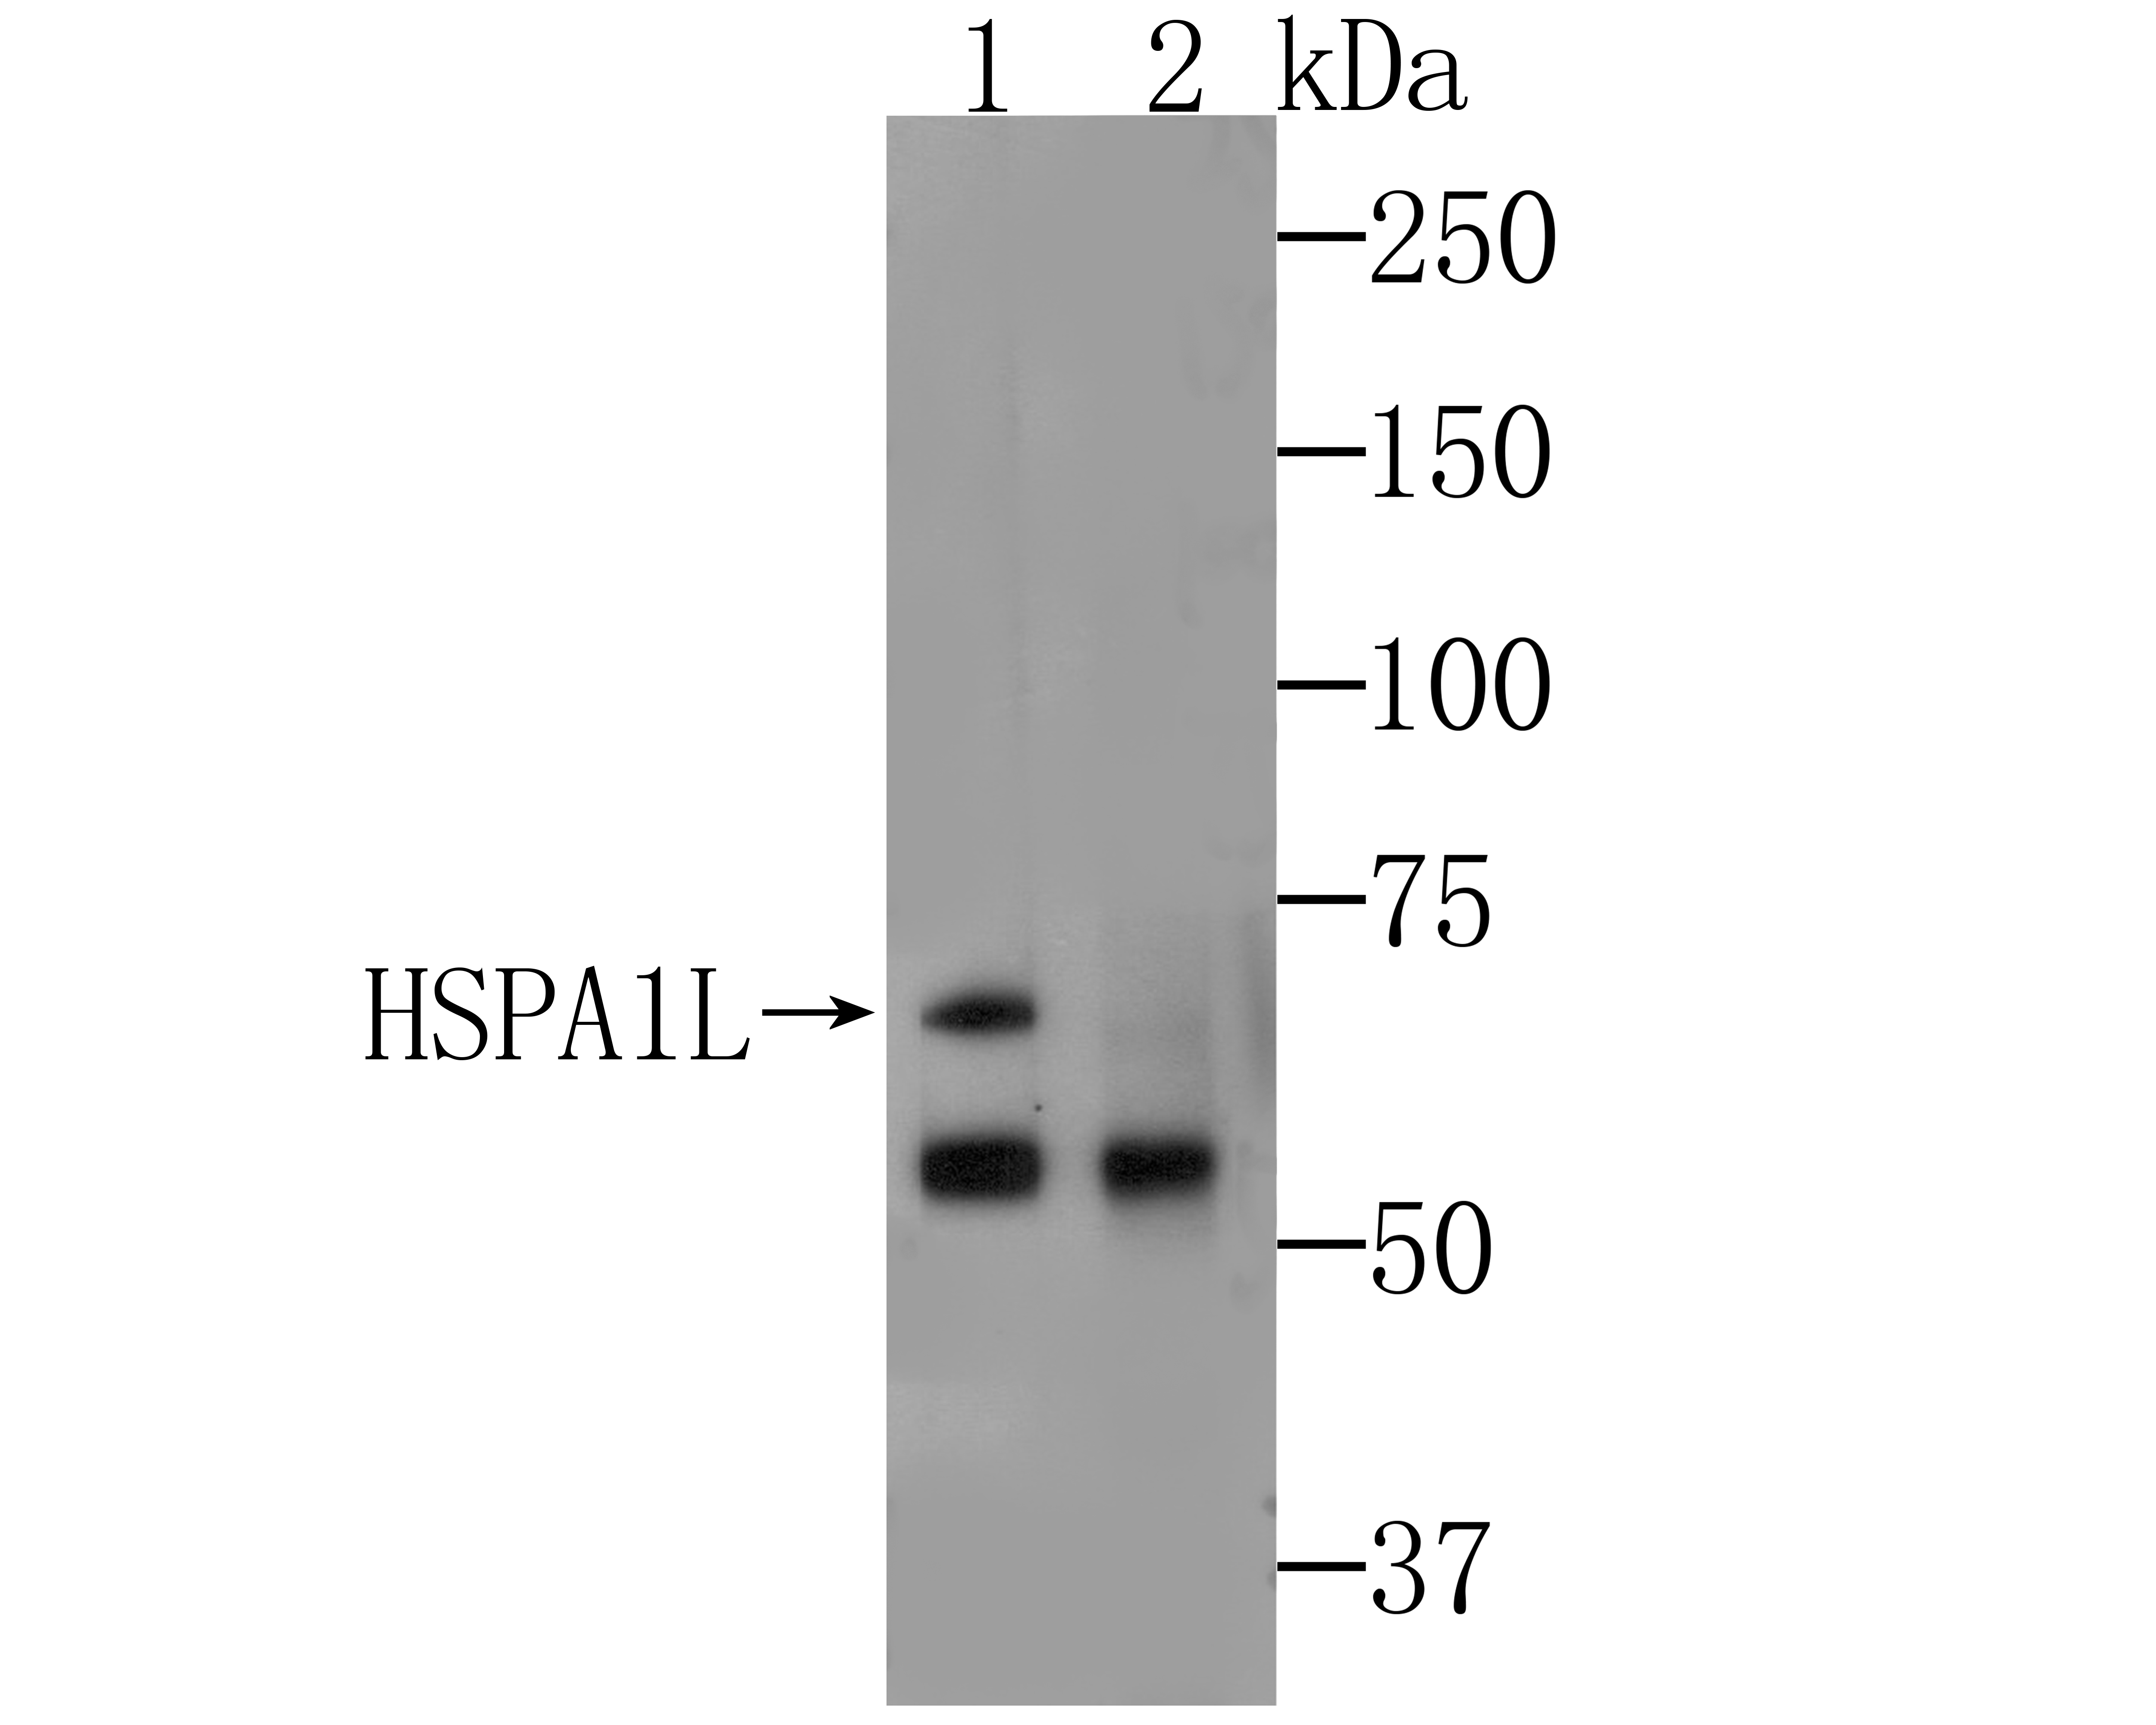 Western blot analysis of HSPA1L on A549 cell lysates. Proteins were transferred to a PVDF membrane and blocked with 5% BSA in PBS for 1 hour at room temperature. The primary antibody was used at a 1:500 dilution in 5% BSA at room temperature for 2 hours. Goat Anti-Mouse IgG - HRP Secondary Antibody (HA1006) at 1:5,000 dilution was used for 1 hour at room temperature.<br /> <br /> Lane 1: Anti-HSPA1L Antibody, (1:500).<br /> Lane 2: Anti-HSPA1L Antibody, preincubated with immunization protein.